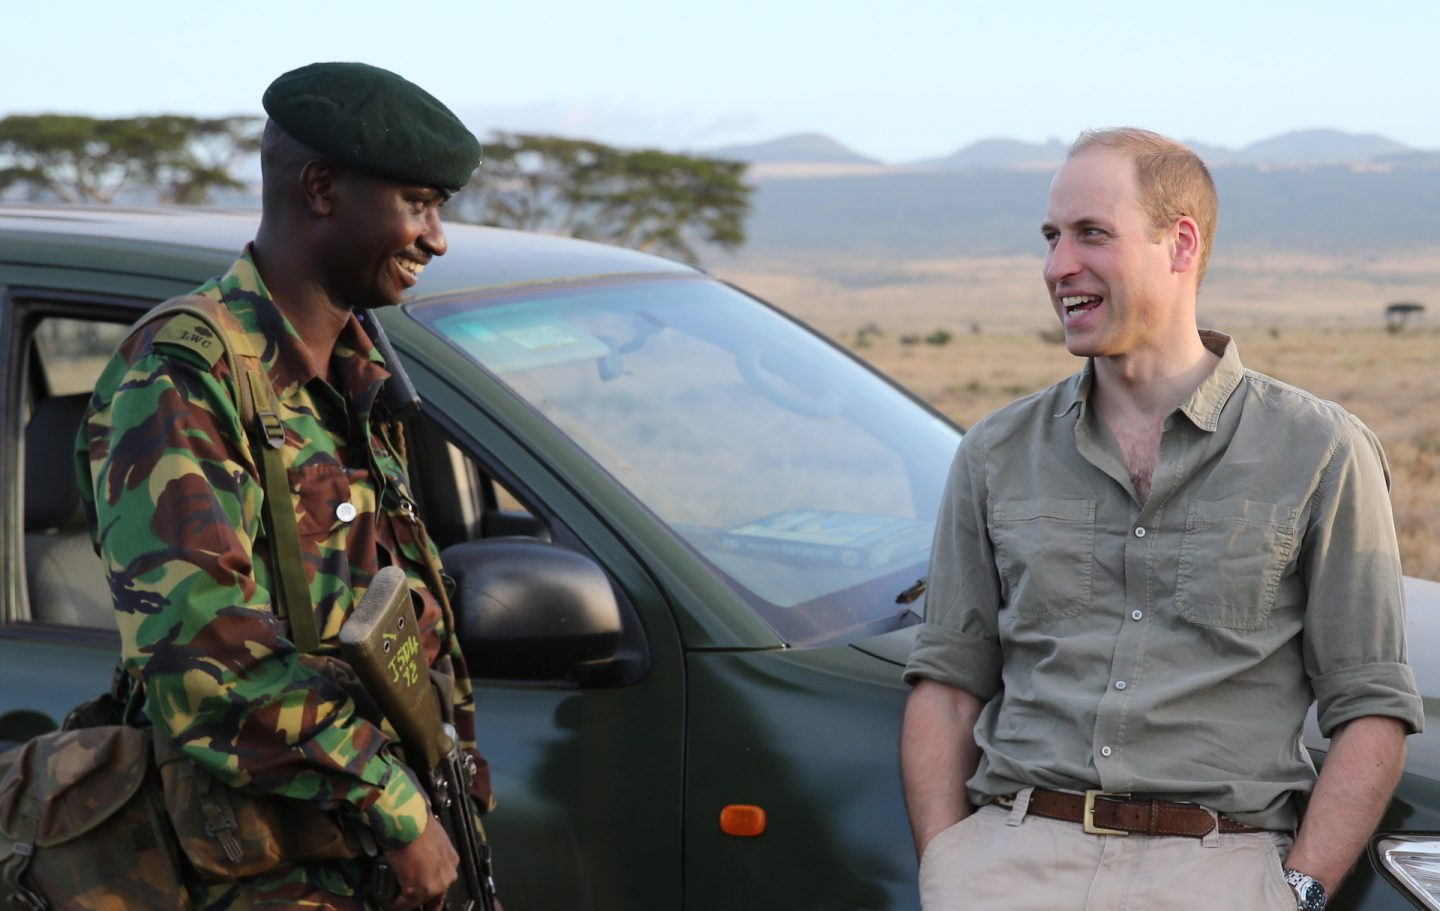 Prince William with Ranger in Lewa on March 24, 2016 in Lewa, Kenya.